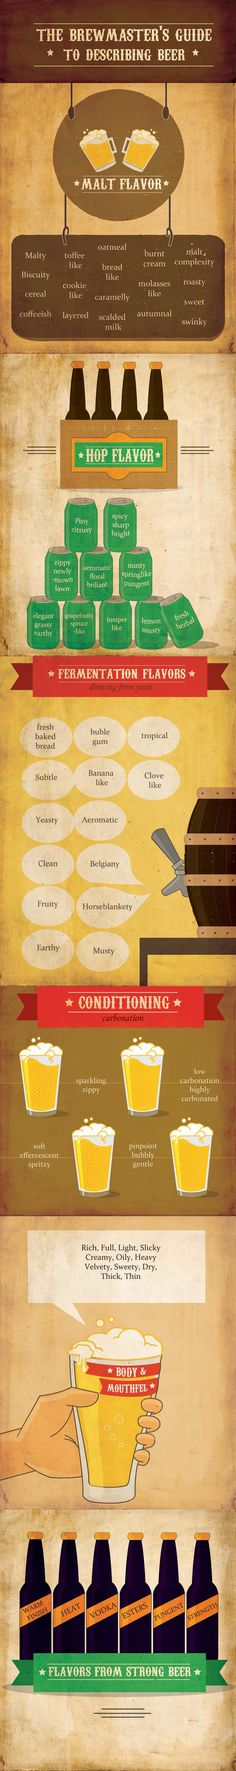 If you ever need help describing beer... The #brewmaster's guide to describing #beer